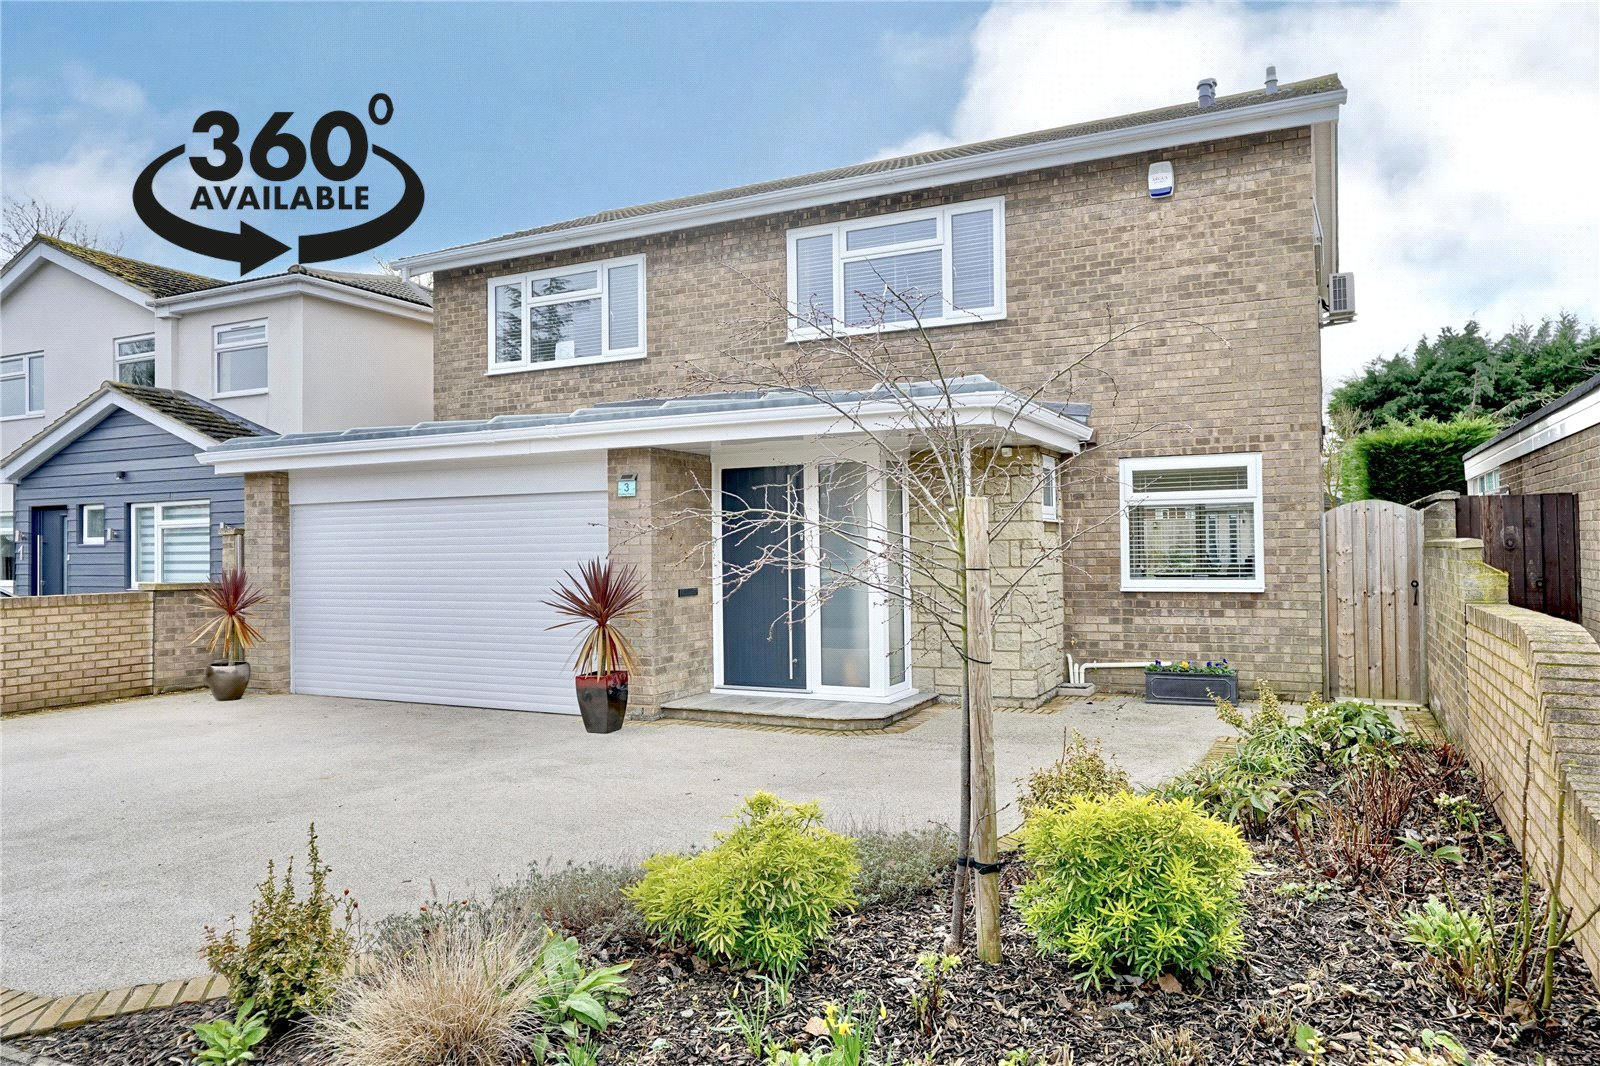 4 bed house for sale in Eaton Ford, PE19 7RG  - Property Image 1